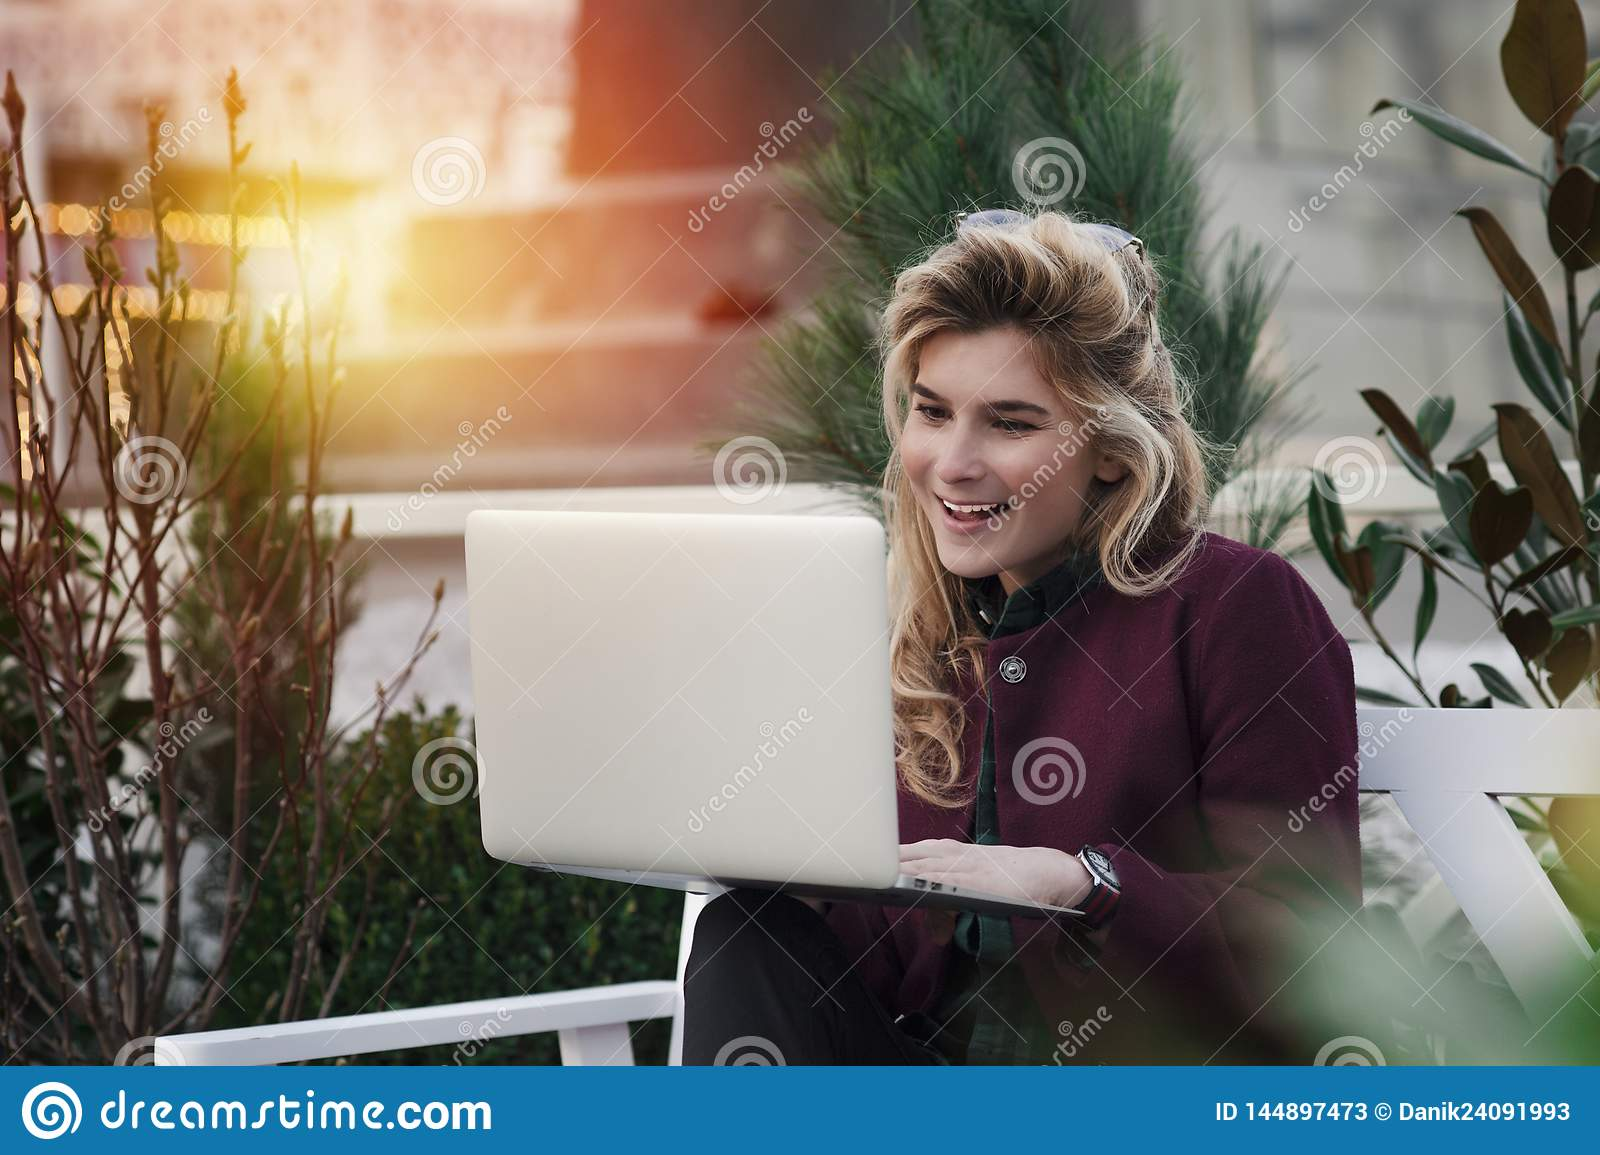 Beautiful girl is sitting on a bench with a laptop in her hands on a fresh street with the city. A concept work in pleasure,